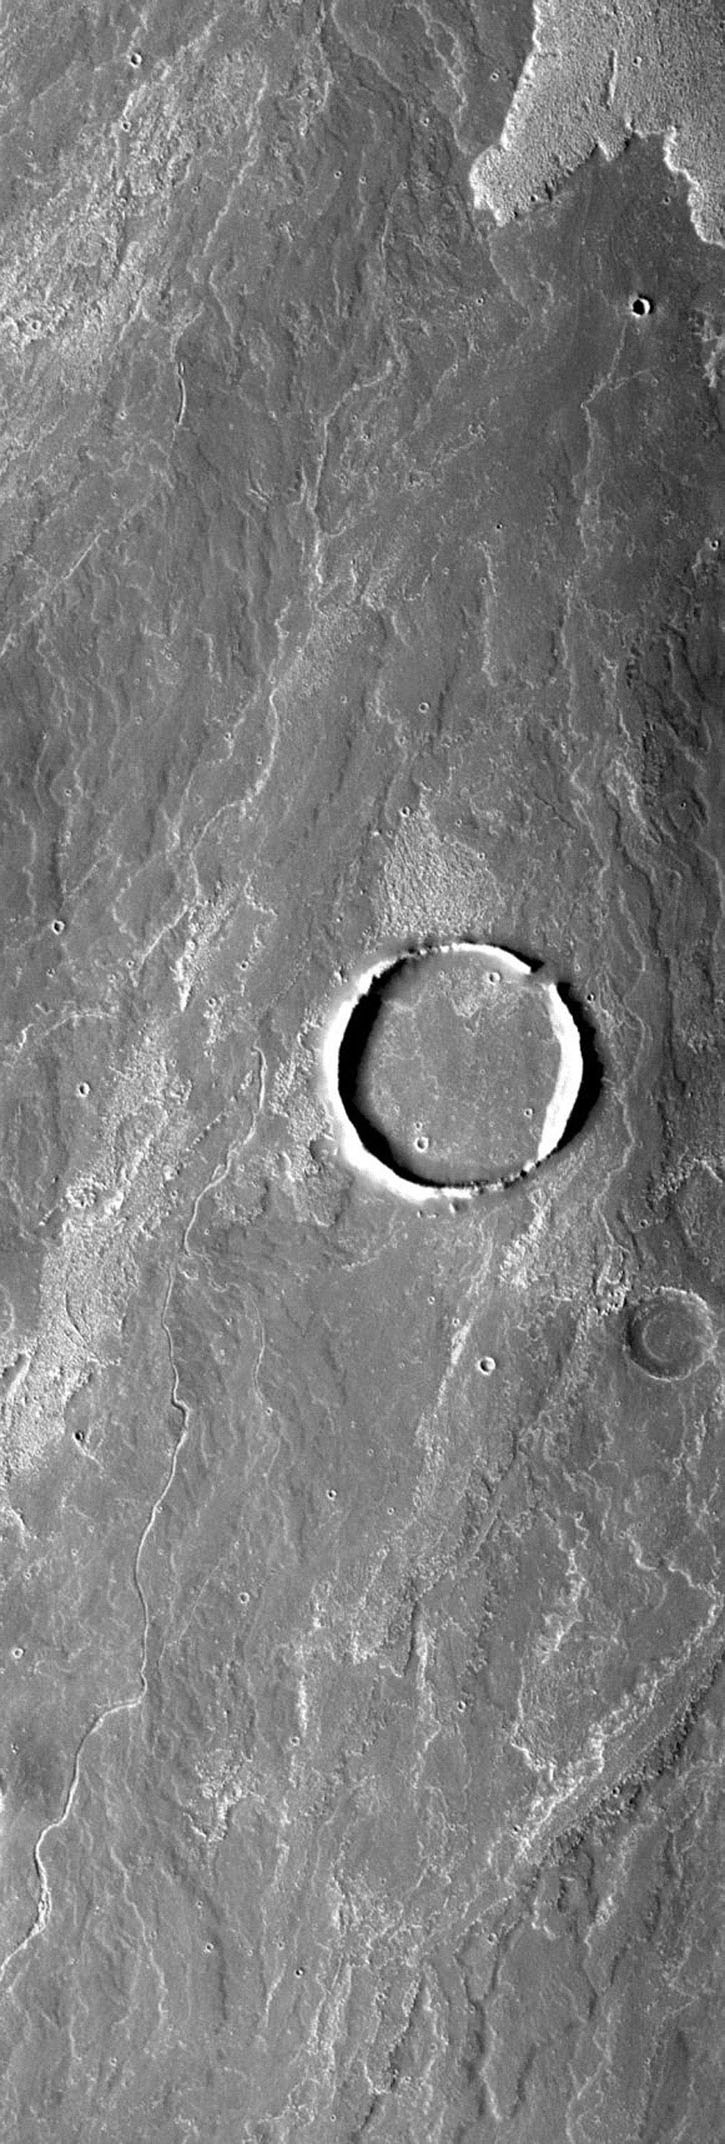 This image from NASA's Mars Odyssey spacecraft shows that Arsia Mons flows that have surrounded a large crater. At some point the flows broke through the crater rim and then filled the interior of the crater with lava.